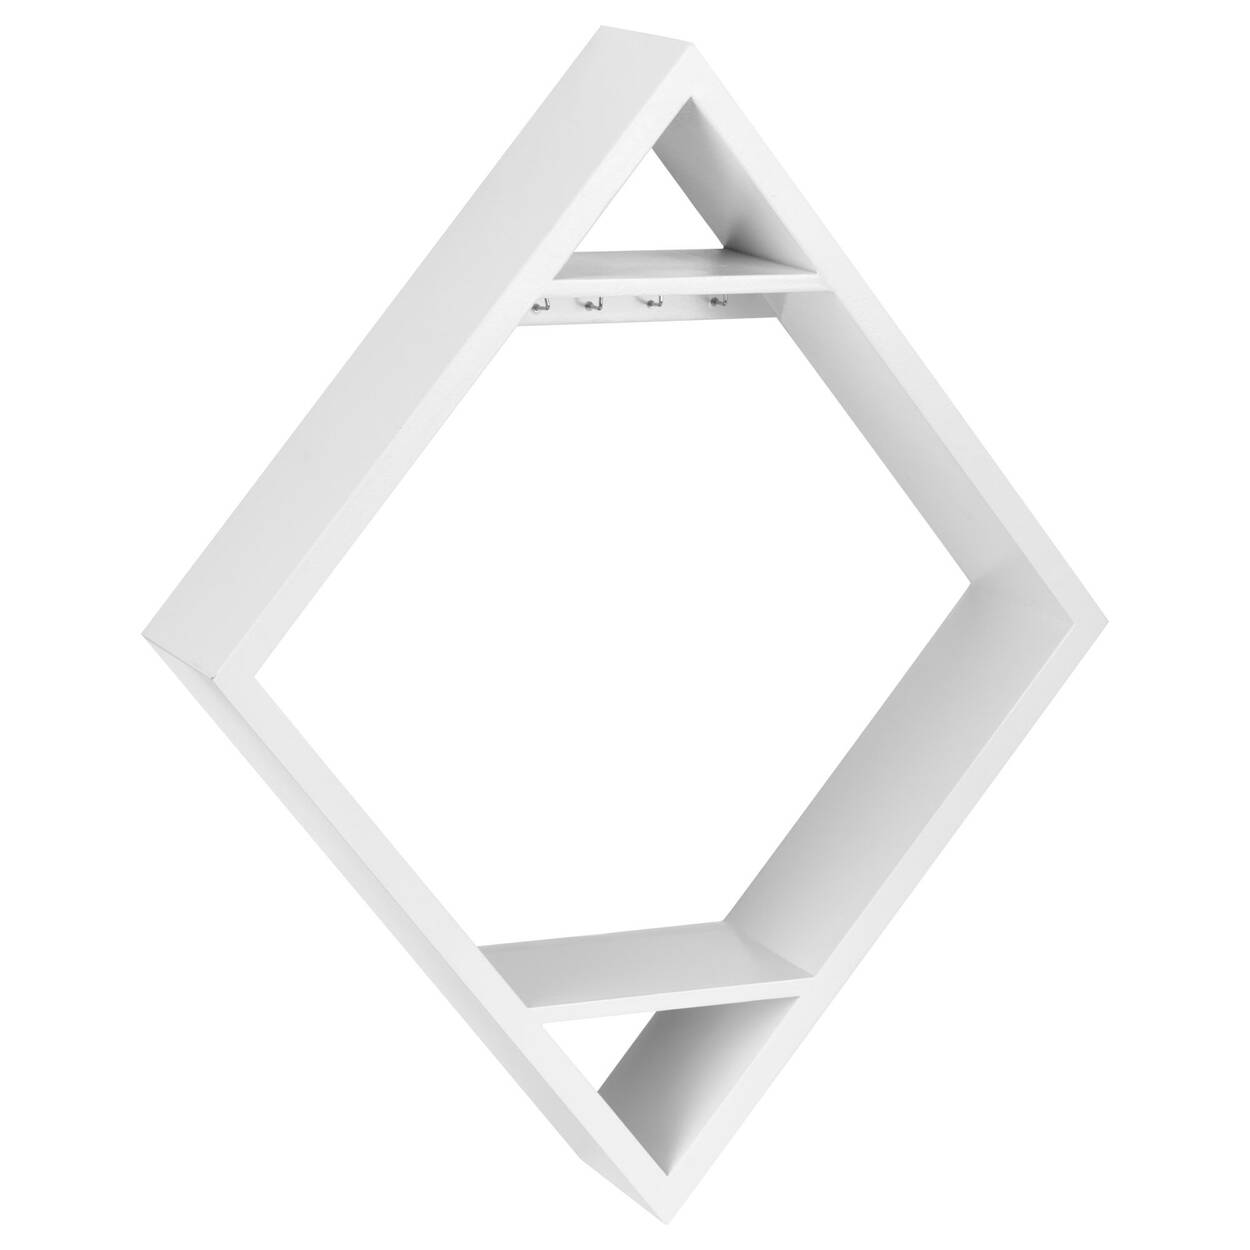 Diamond Shaped Wall Shelf